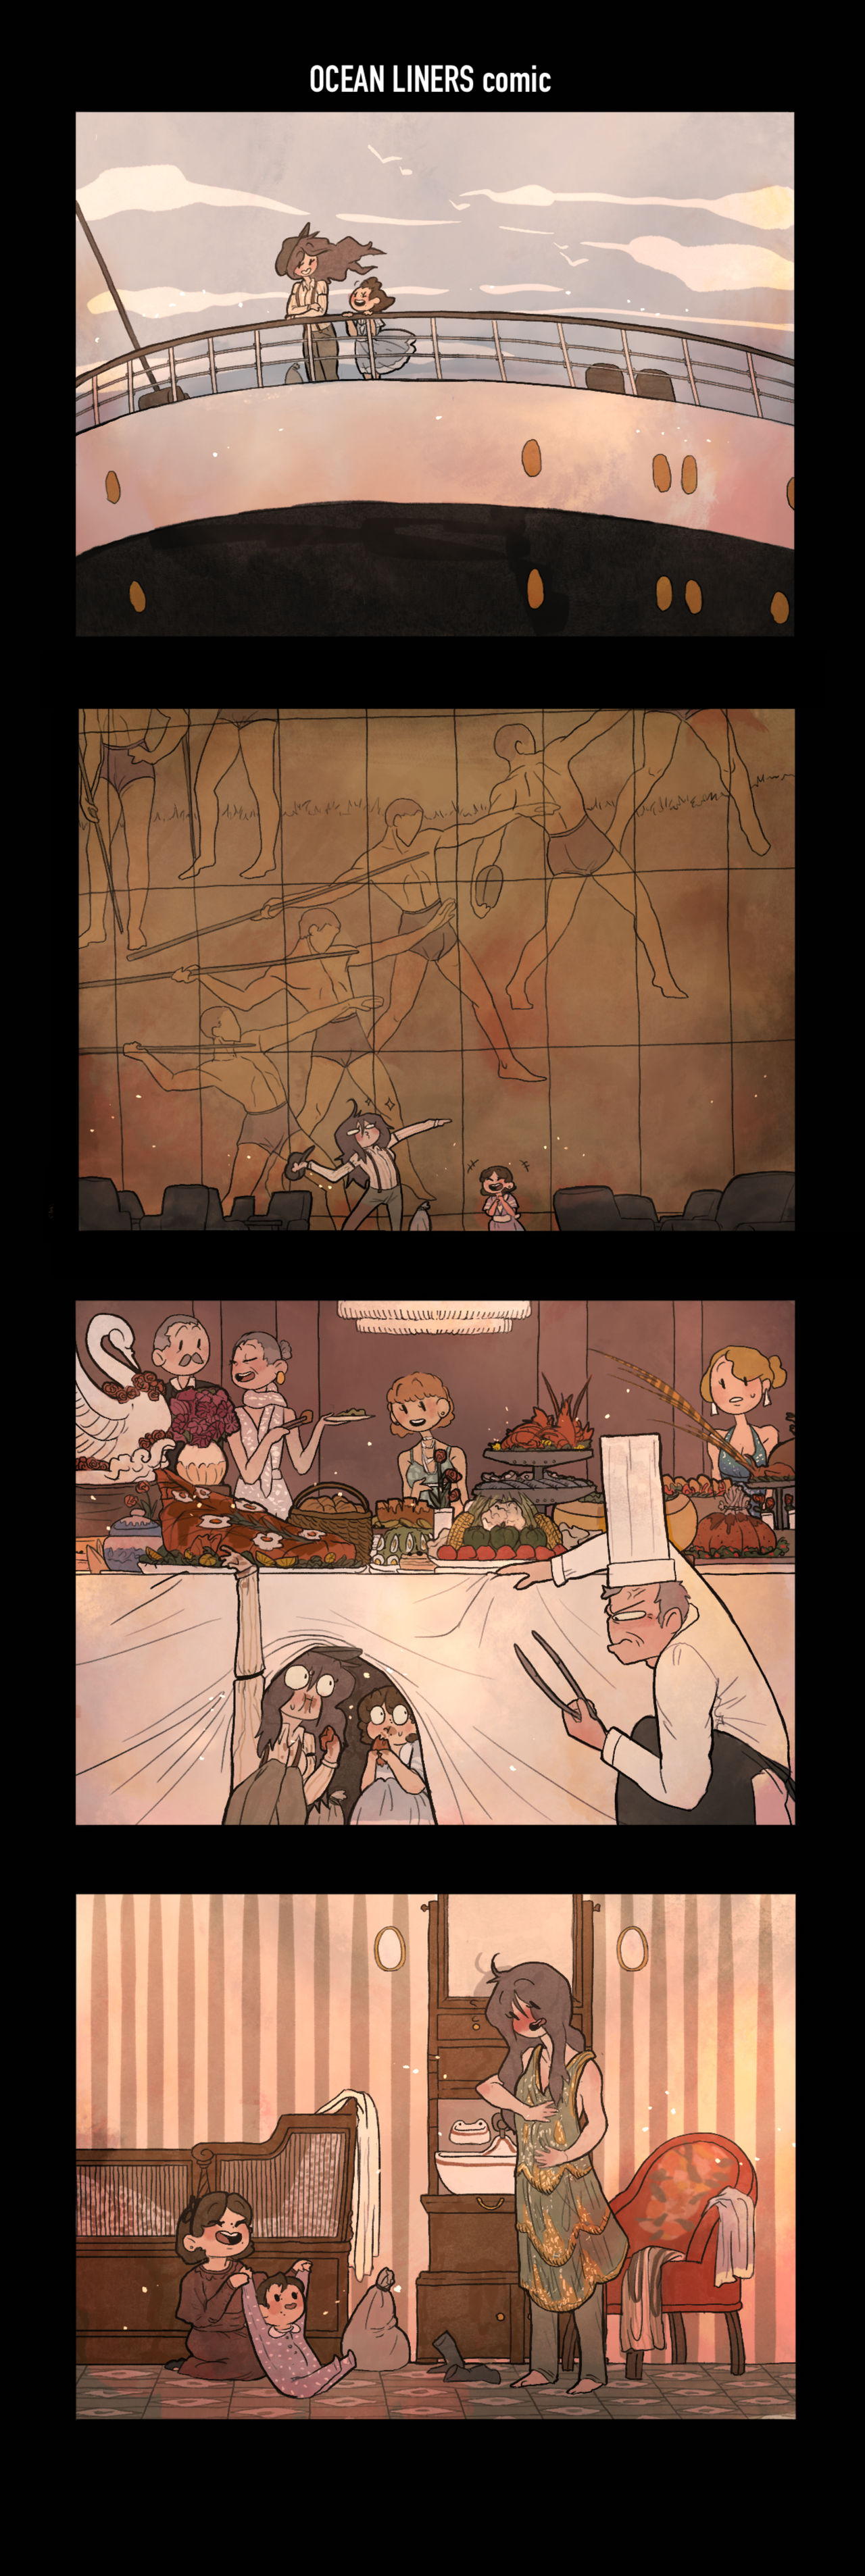 A stacked four-panel webcomic. The top panel shows an adult person standing next to a child in a blue dress on the prow of a ship. The second panel shows the two people in front of a huge bronze panel depicting athletes. The third panel shows a decadent banquet taking place and our two characters are sat under the table, obscured by the table cloth as a chef finds them by lifting it up. The final panel shows them both in a cabin trying on twenties dresses and playing with a baby.